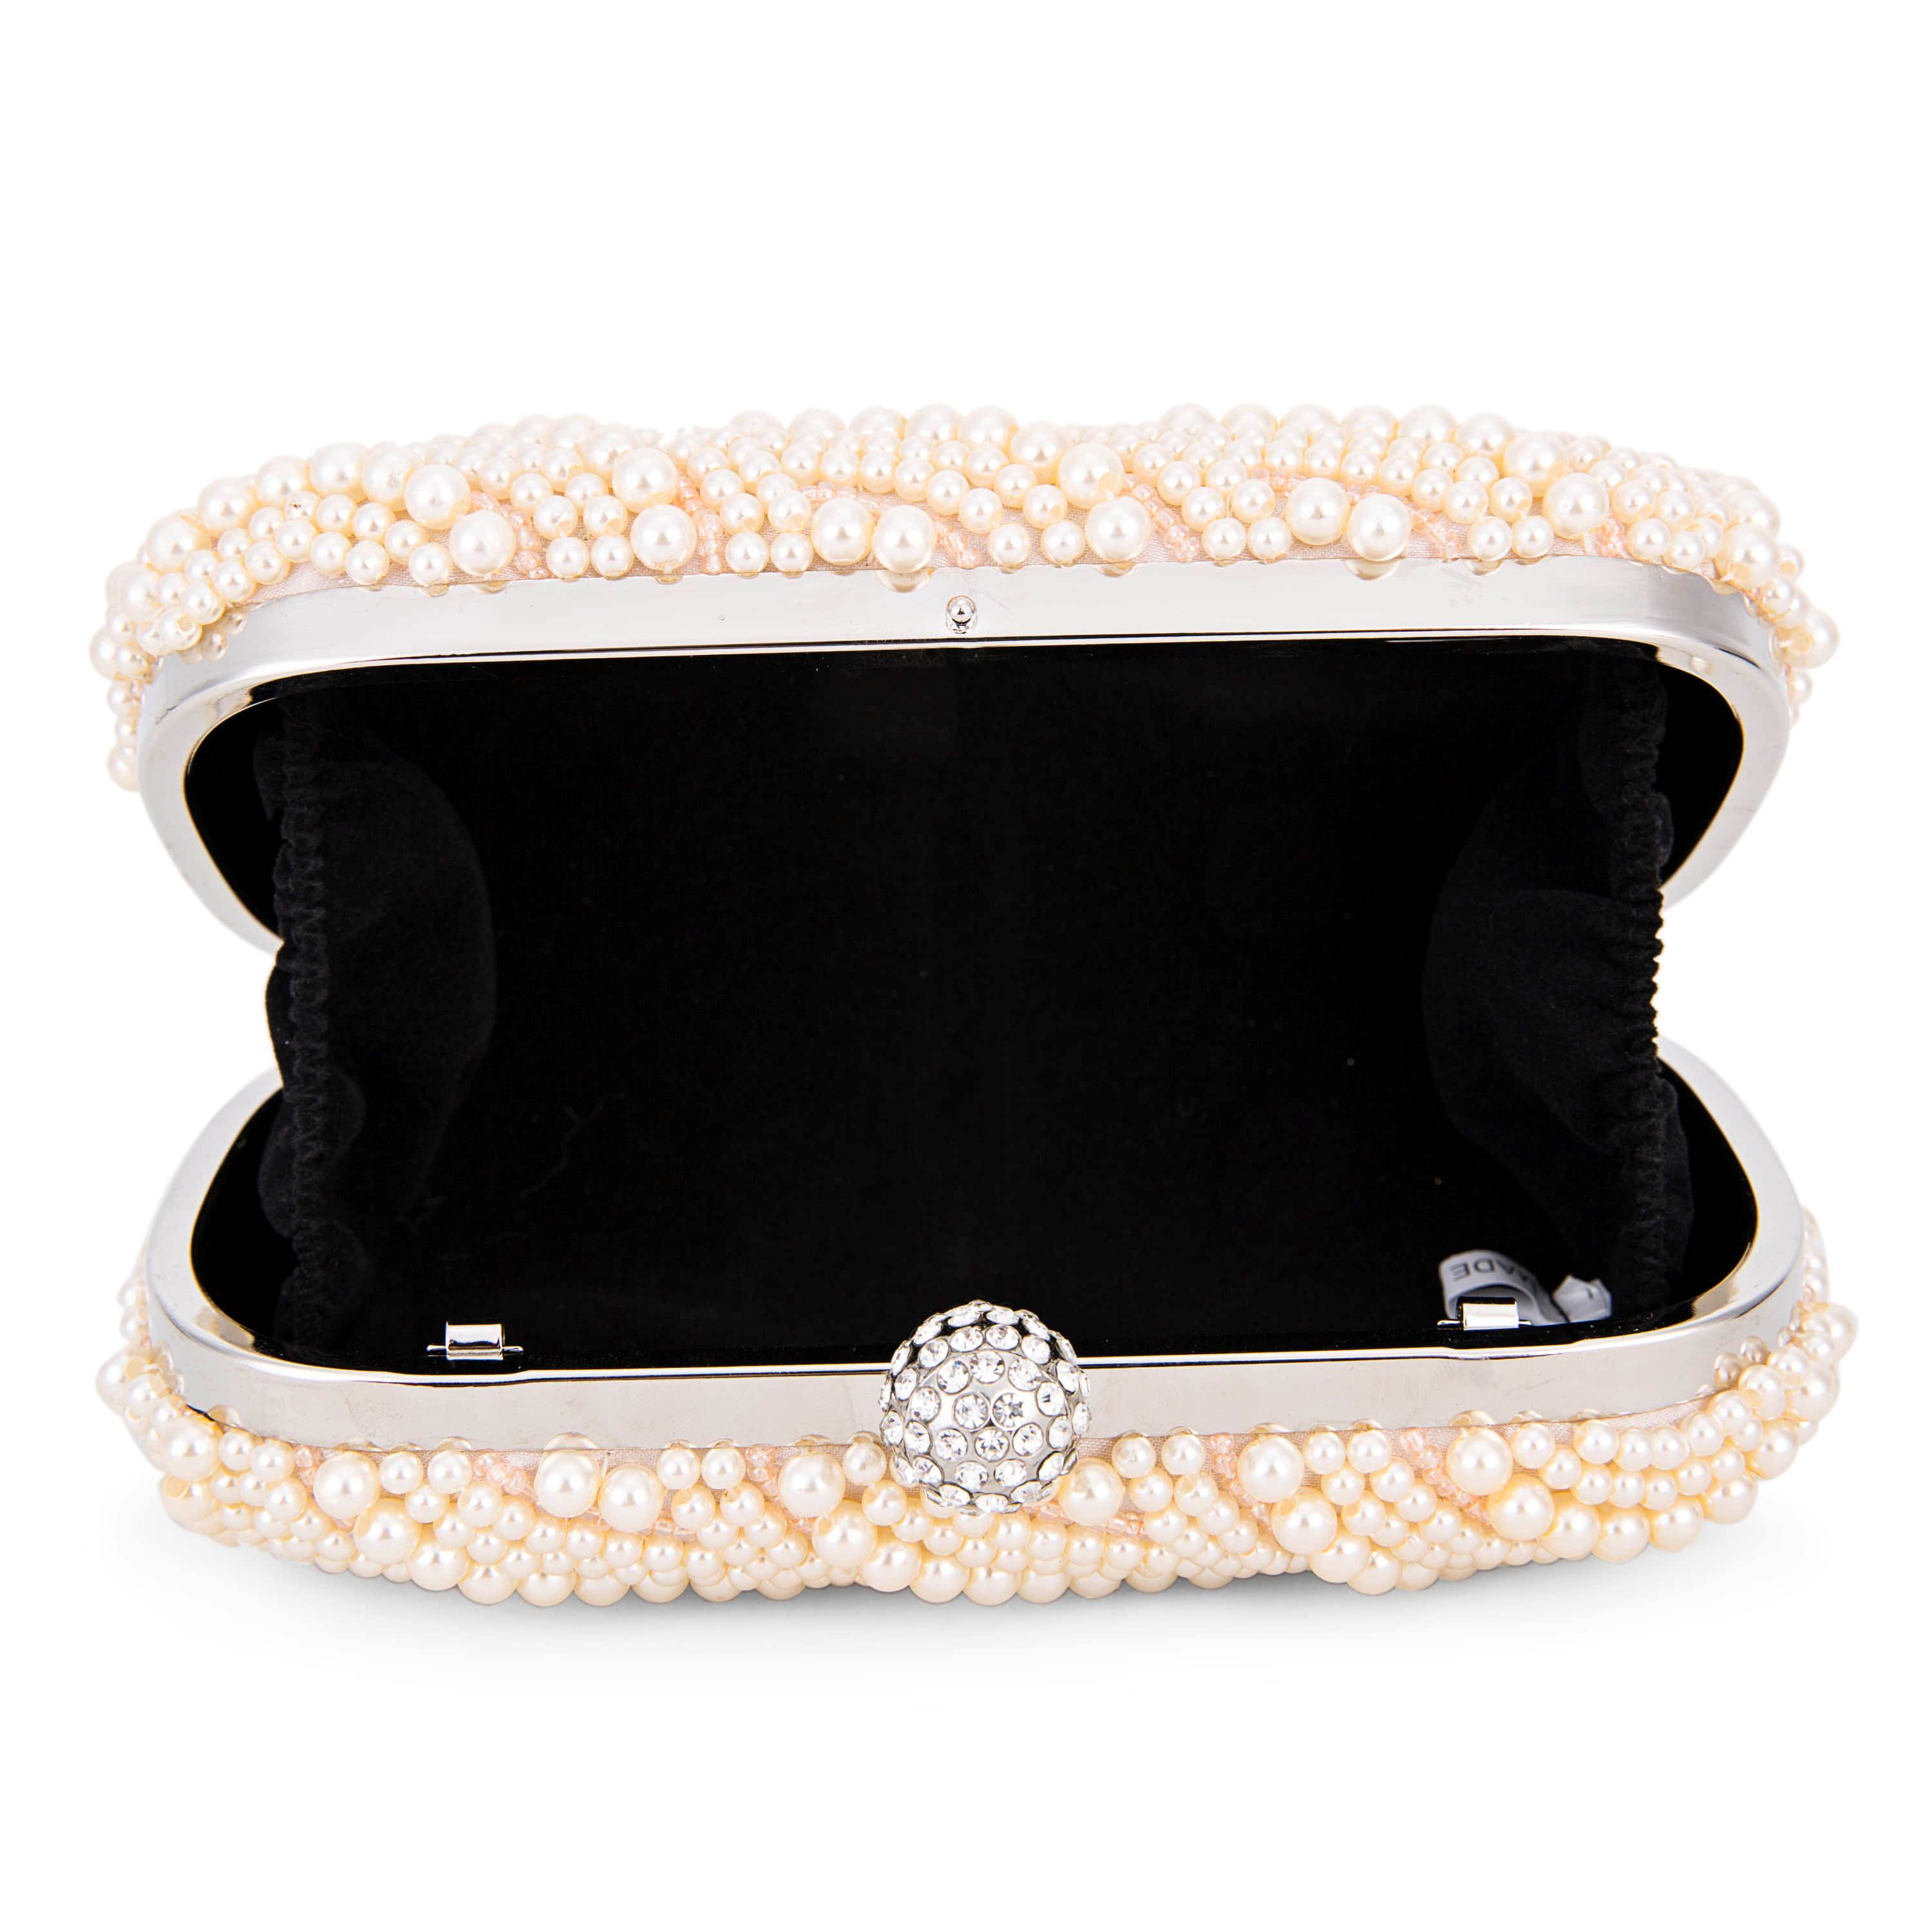 Rhinestone and Beads Decoration Women Evening Clutches